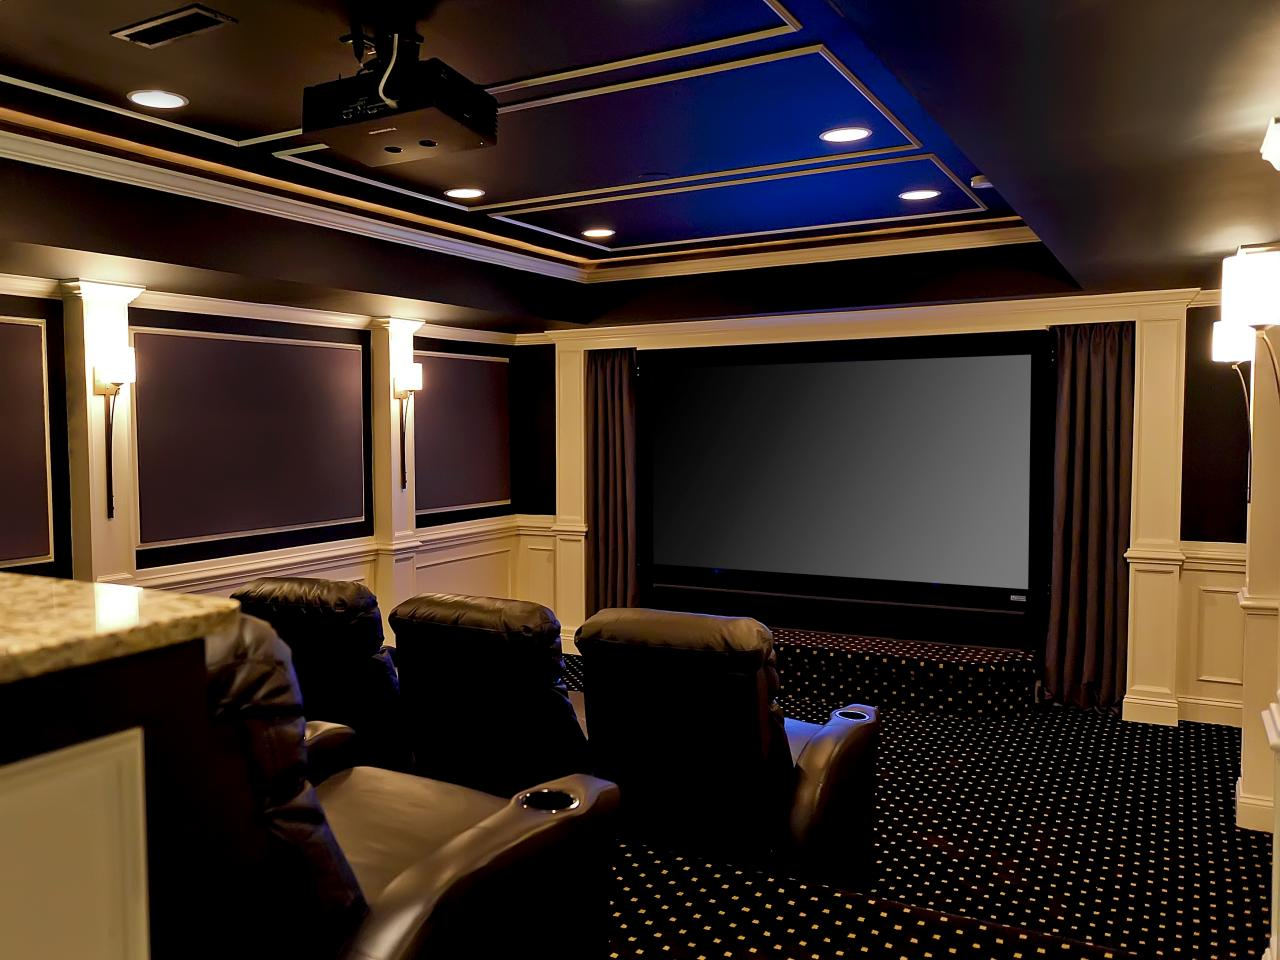 Basement home theater ideas pictures options expert tips home remodeling ideas for Interior design ideas home theater